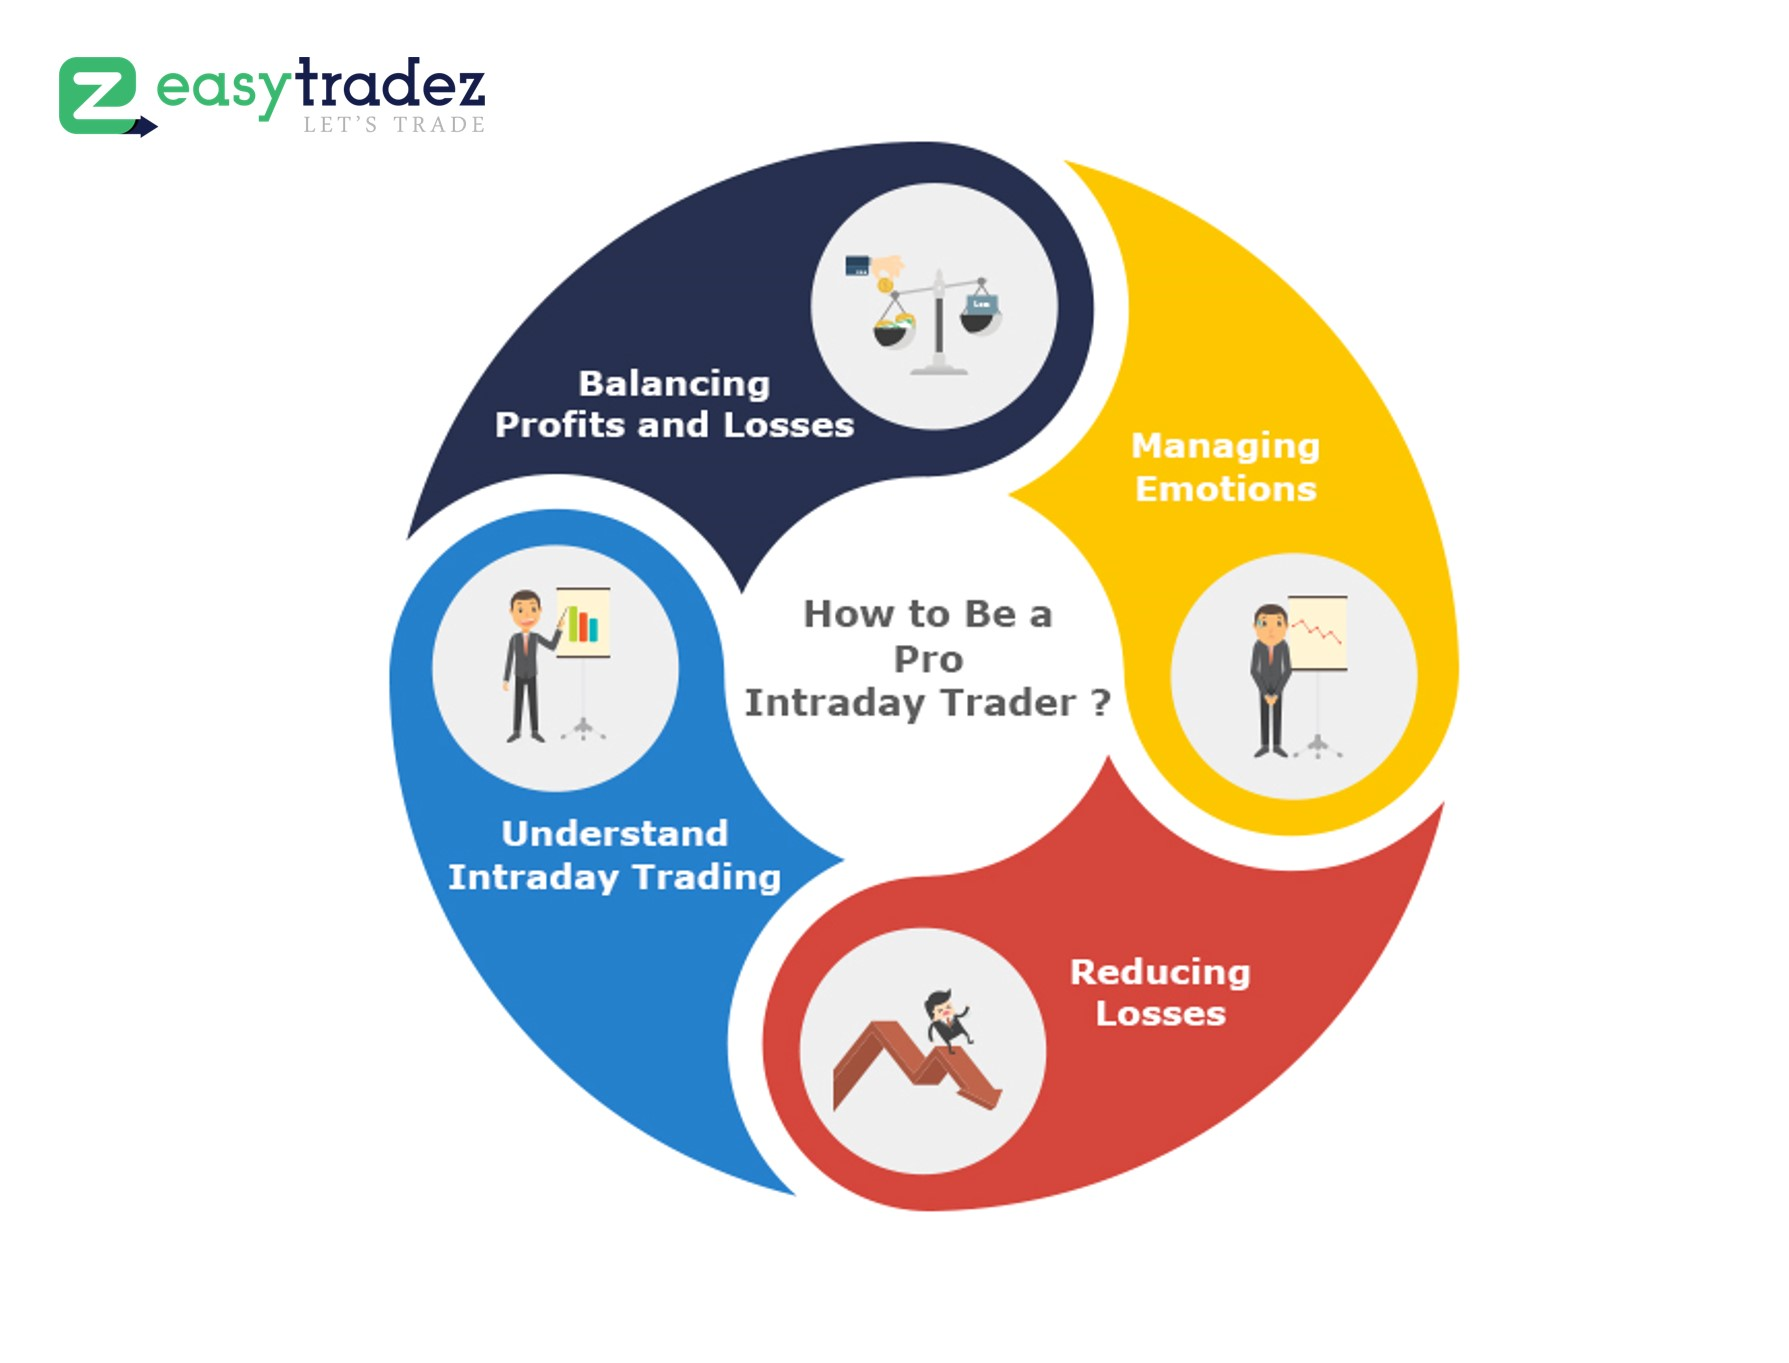 How to Be a Pro Intraday Trader